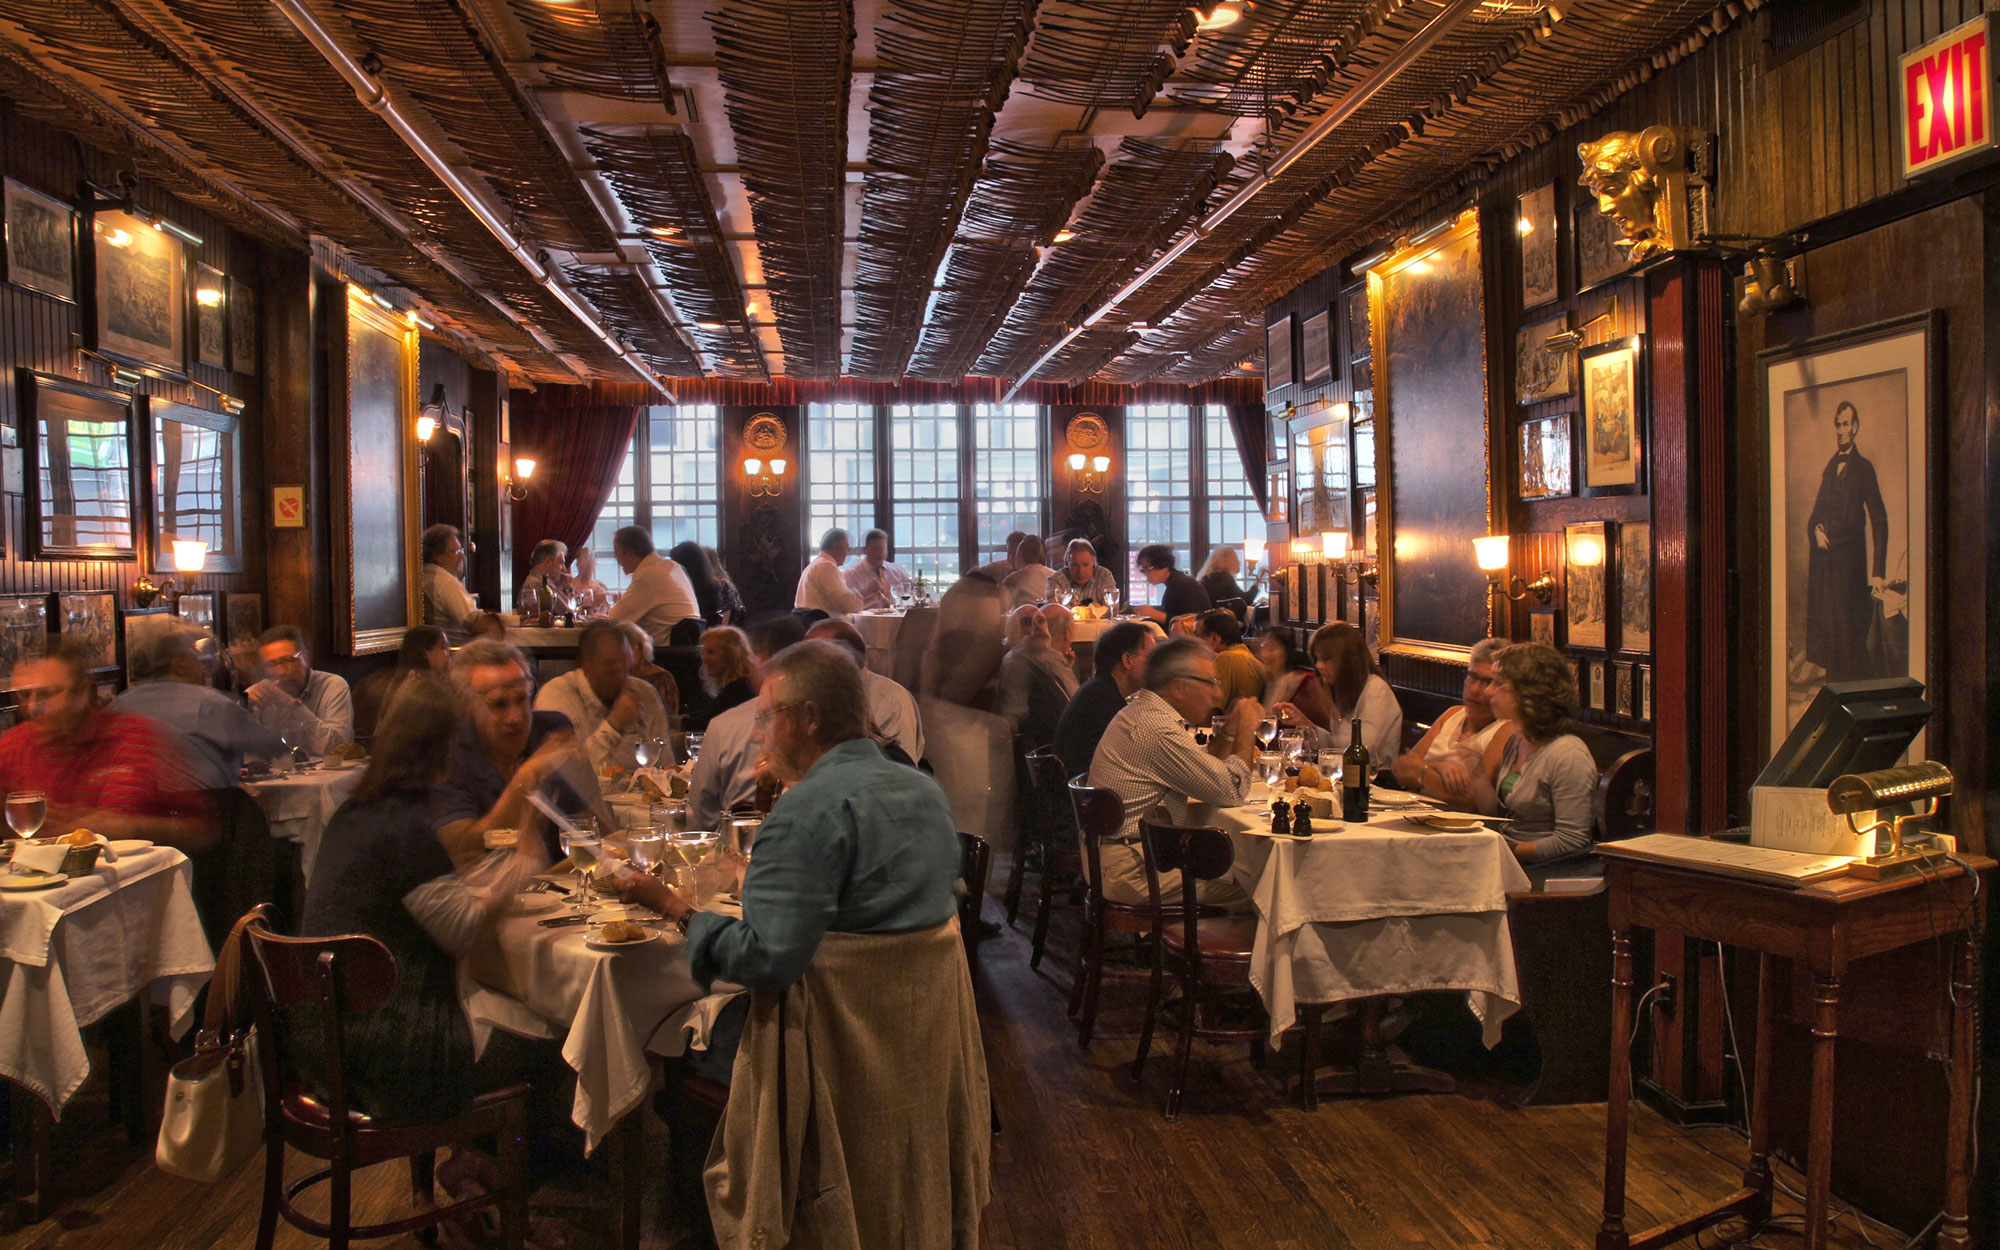 Best Old Restaurants and Bars in NYC: Keens Steakhouse